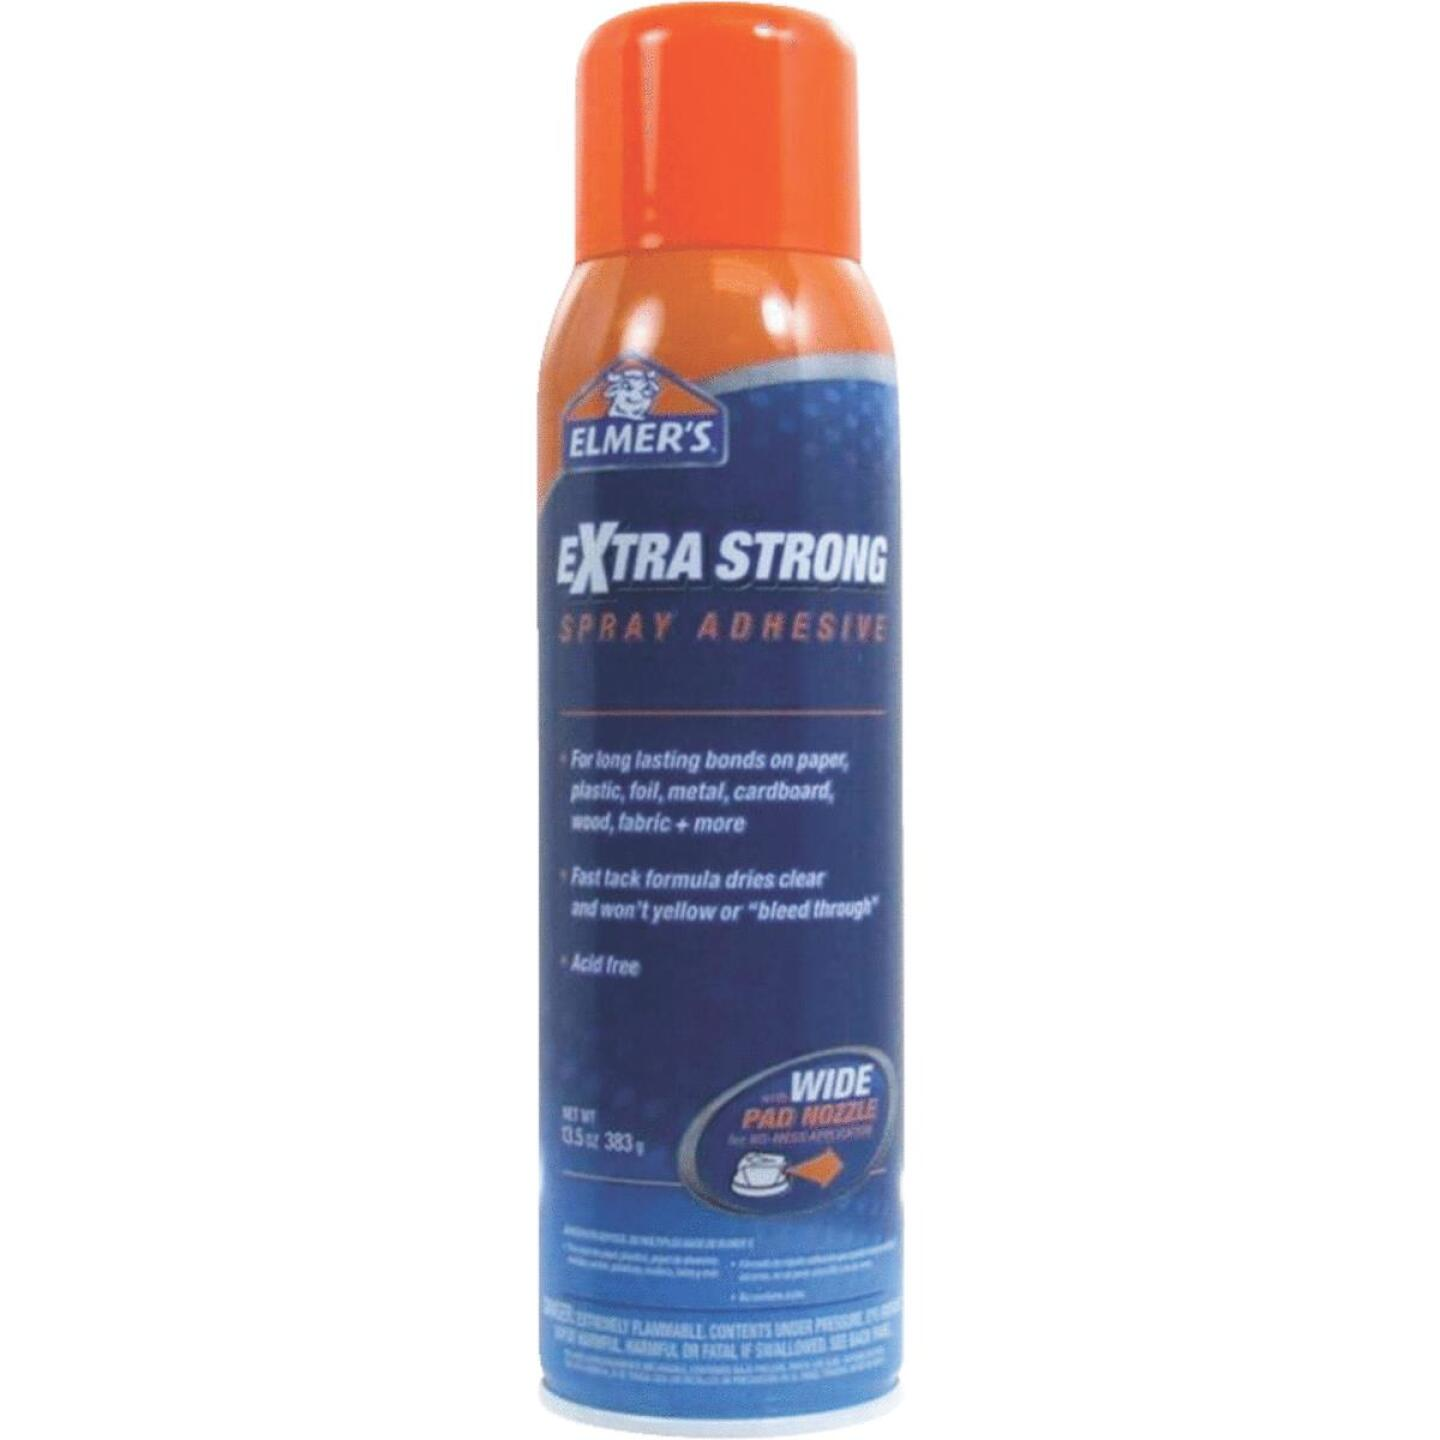 Elmer's 13-1/2 Oz. Extra Strong Spray Adhesive Image 1